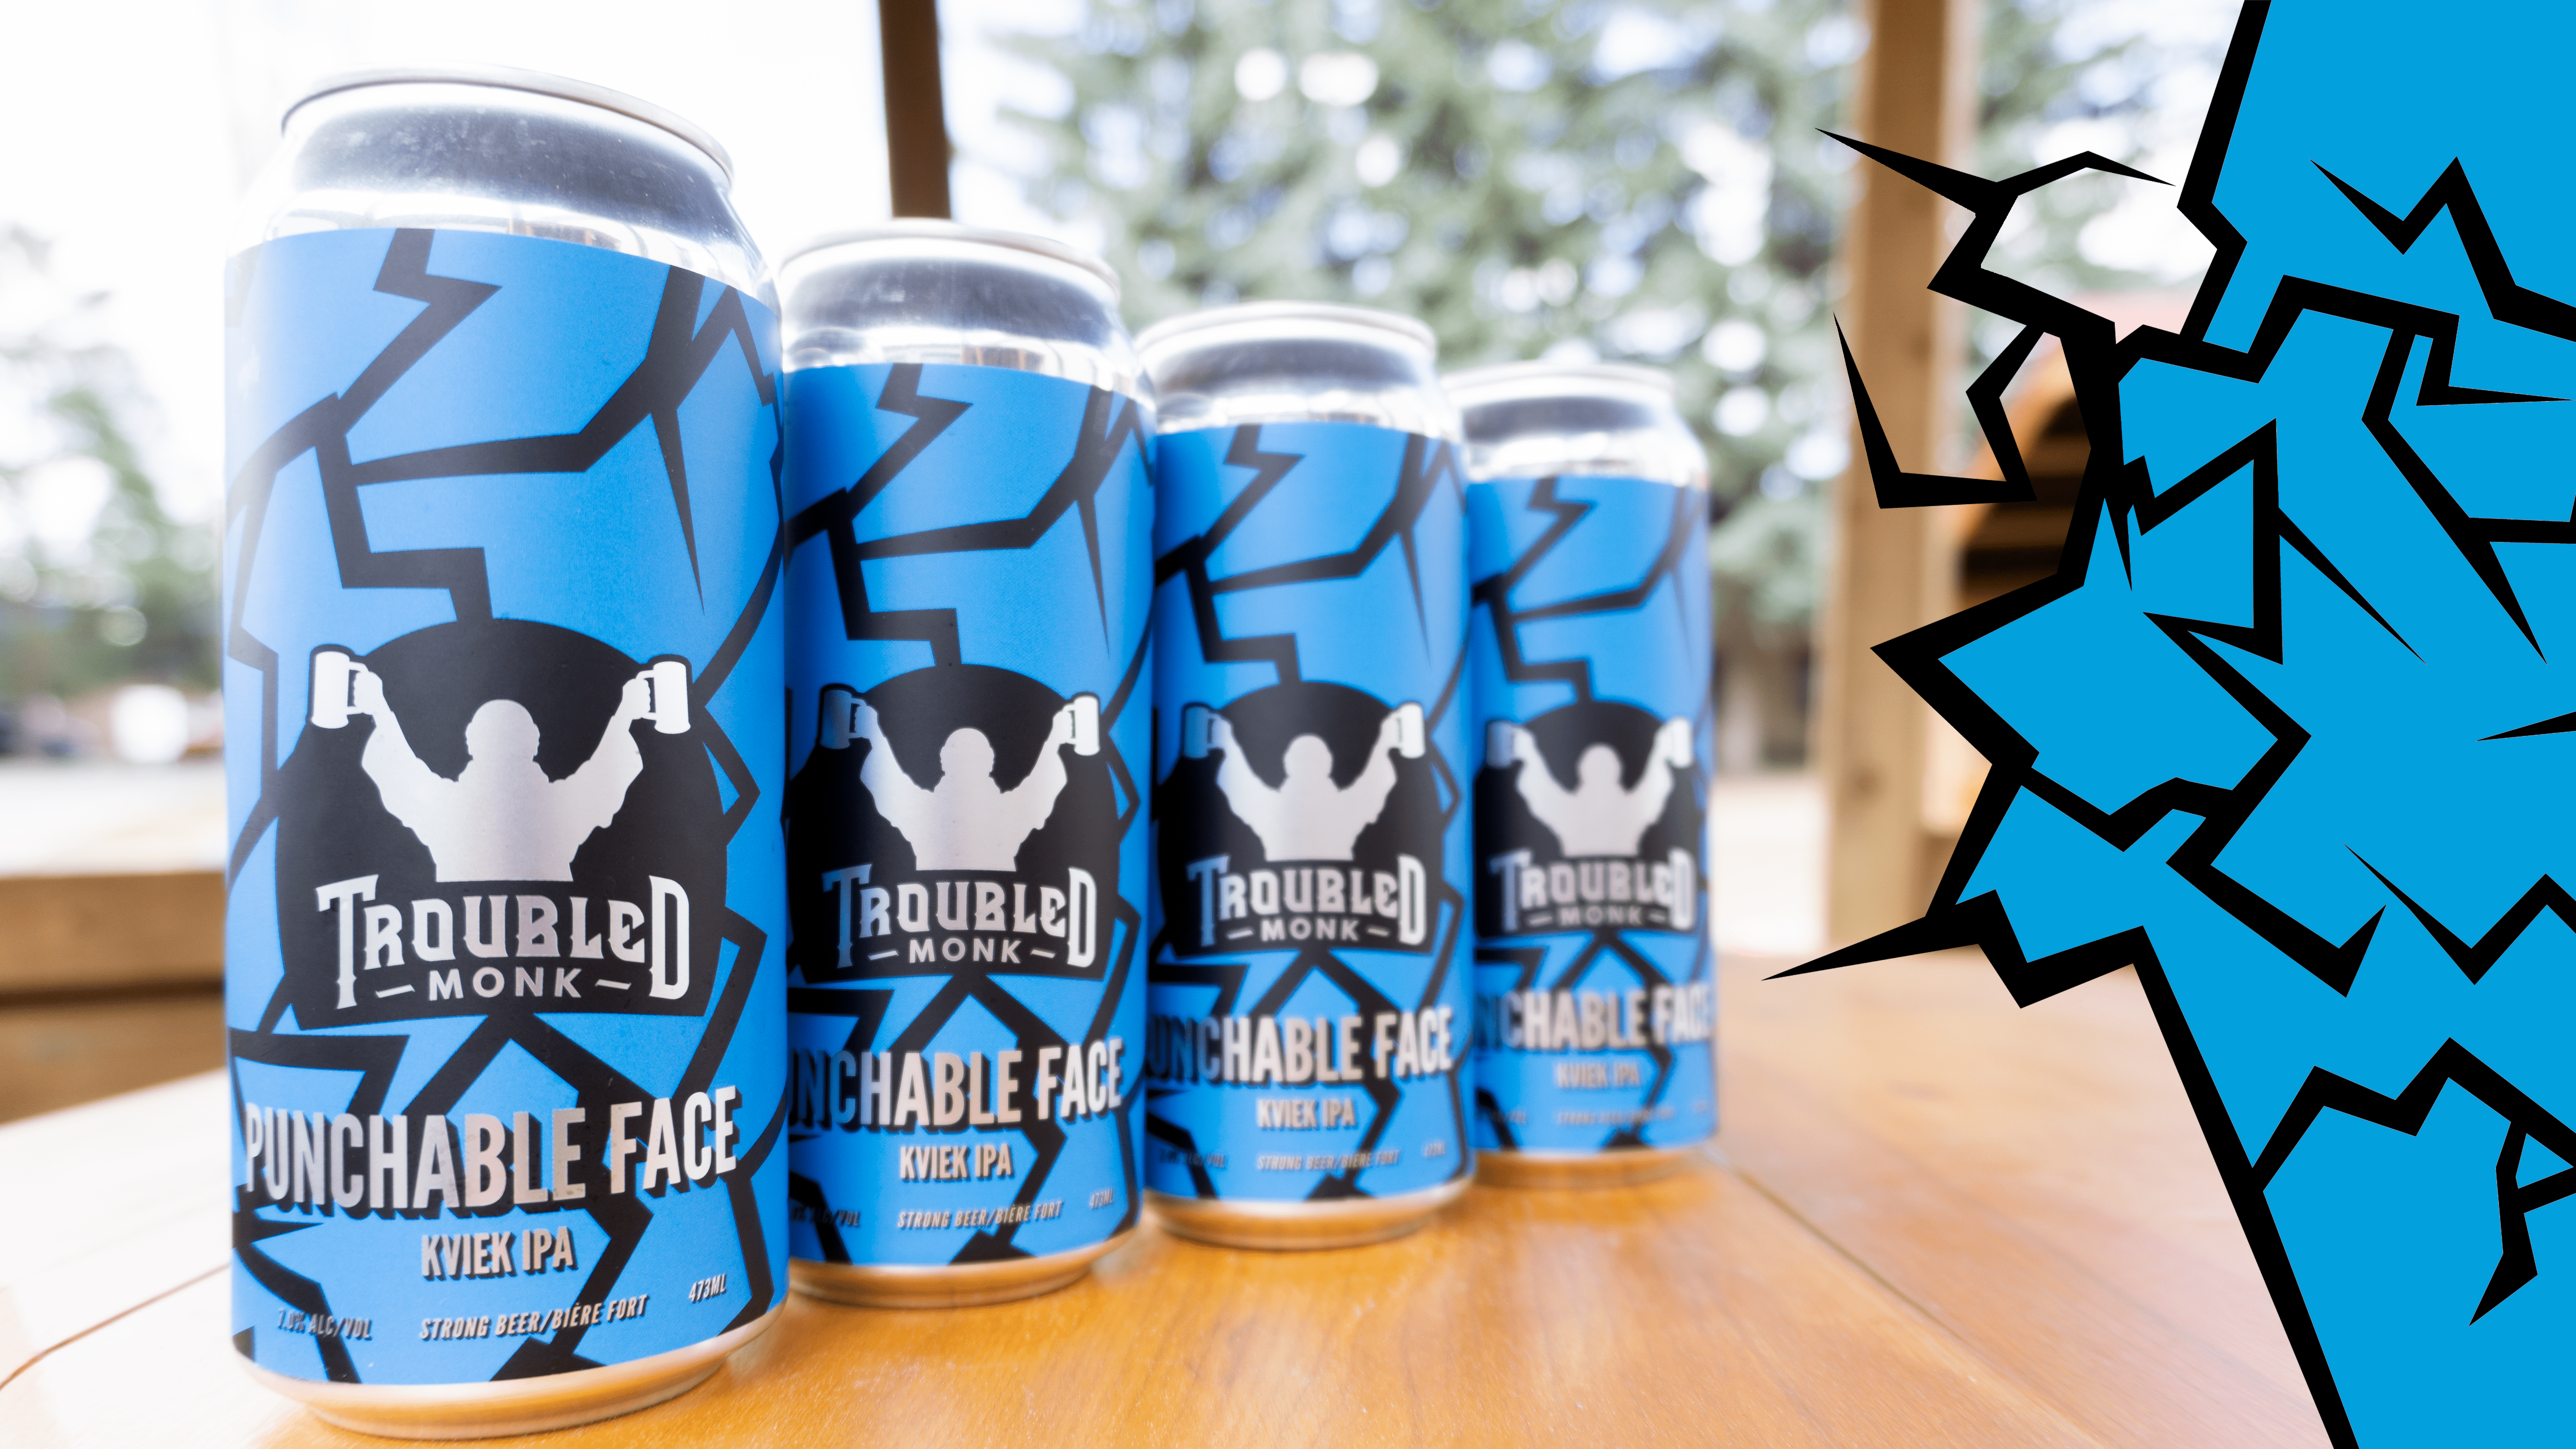 A line up of punchable face black and blue kviek ipa cans. Location is a cabana on troubled monk's patio.